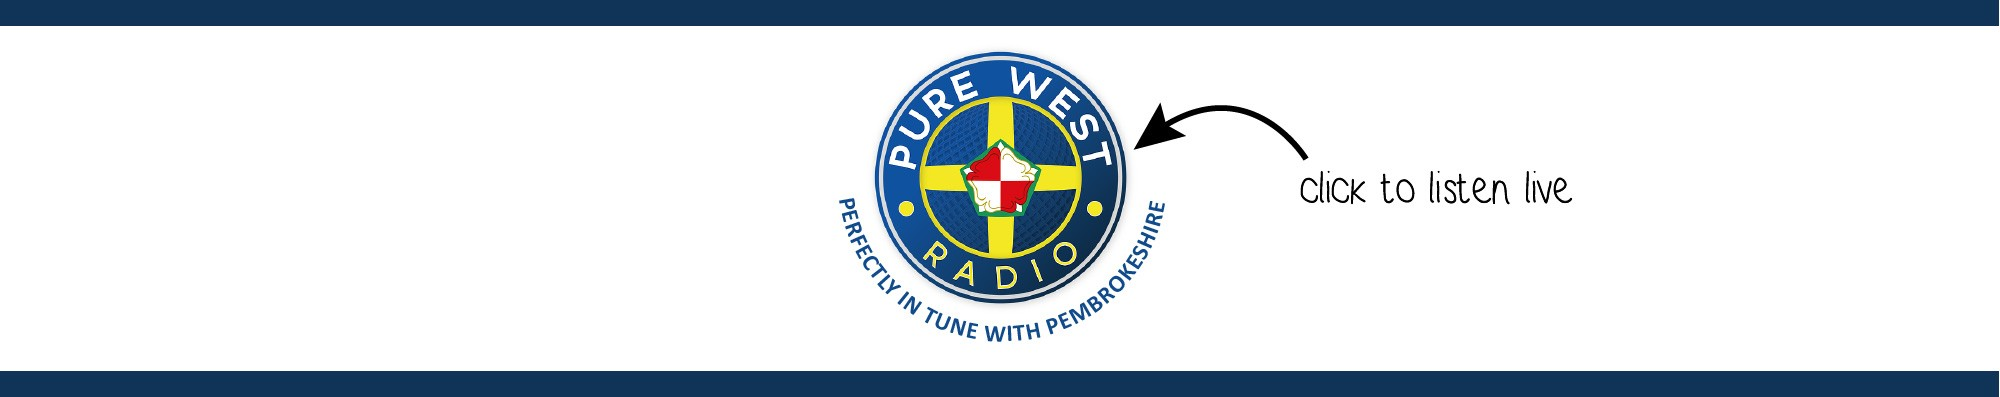 Pure-West-Radio